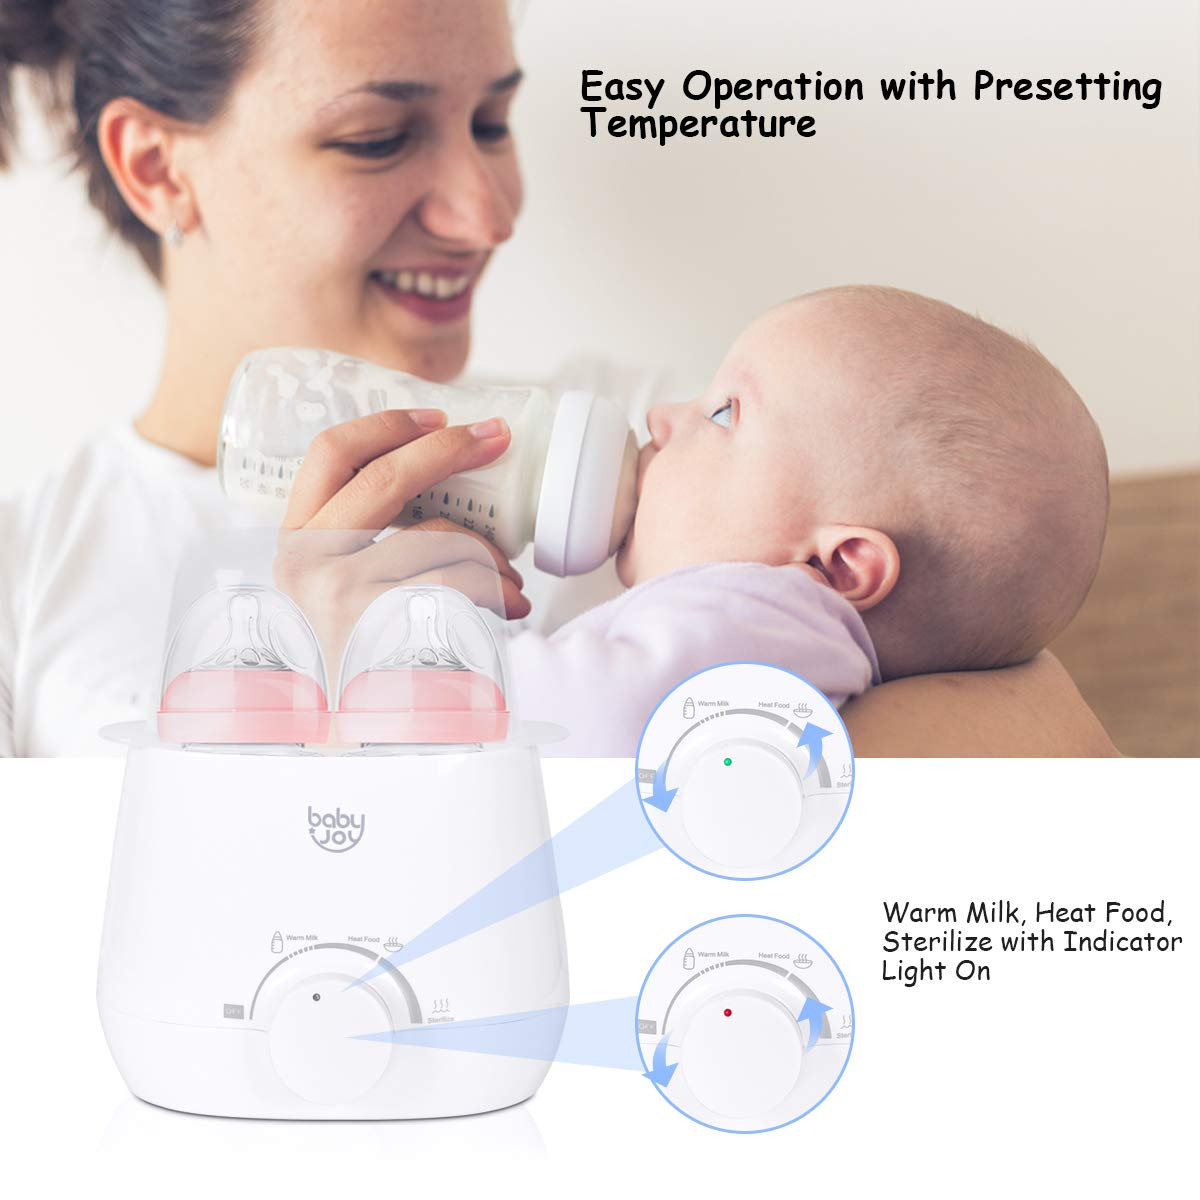 Baby Joy 3-in-1 Baby Bottle Warmer, Food Warmer, Steam Sterilizer, Portable Warming Breast Milk, Double Bottles Warmer with Accurate Temperature Control, Dry-Fire Protection by Baby & Joy (Image #4)